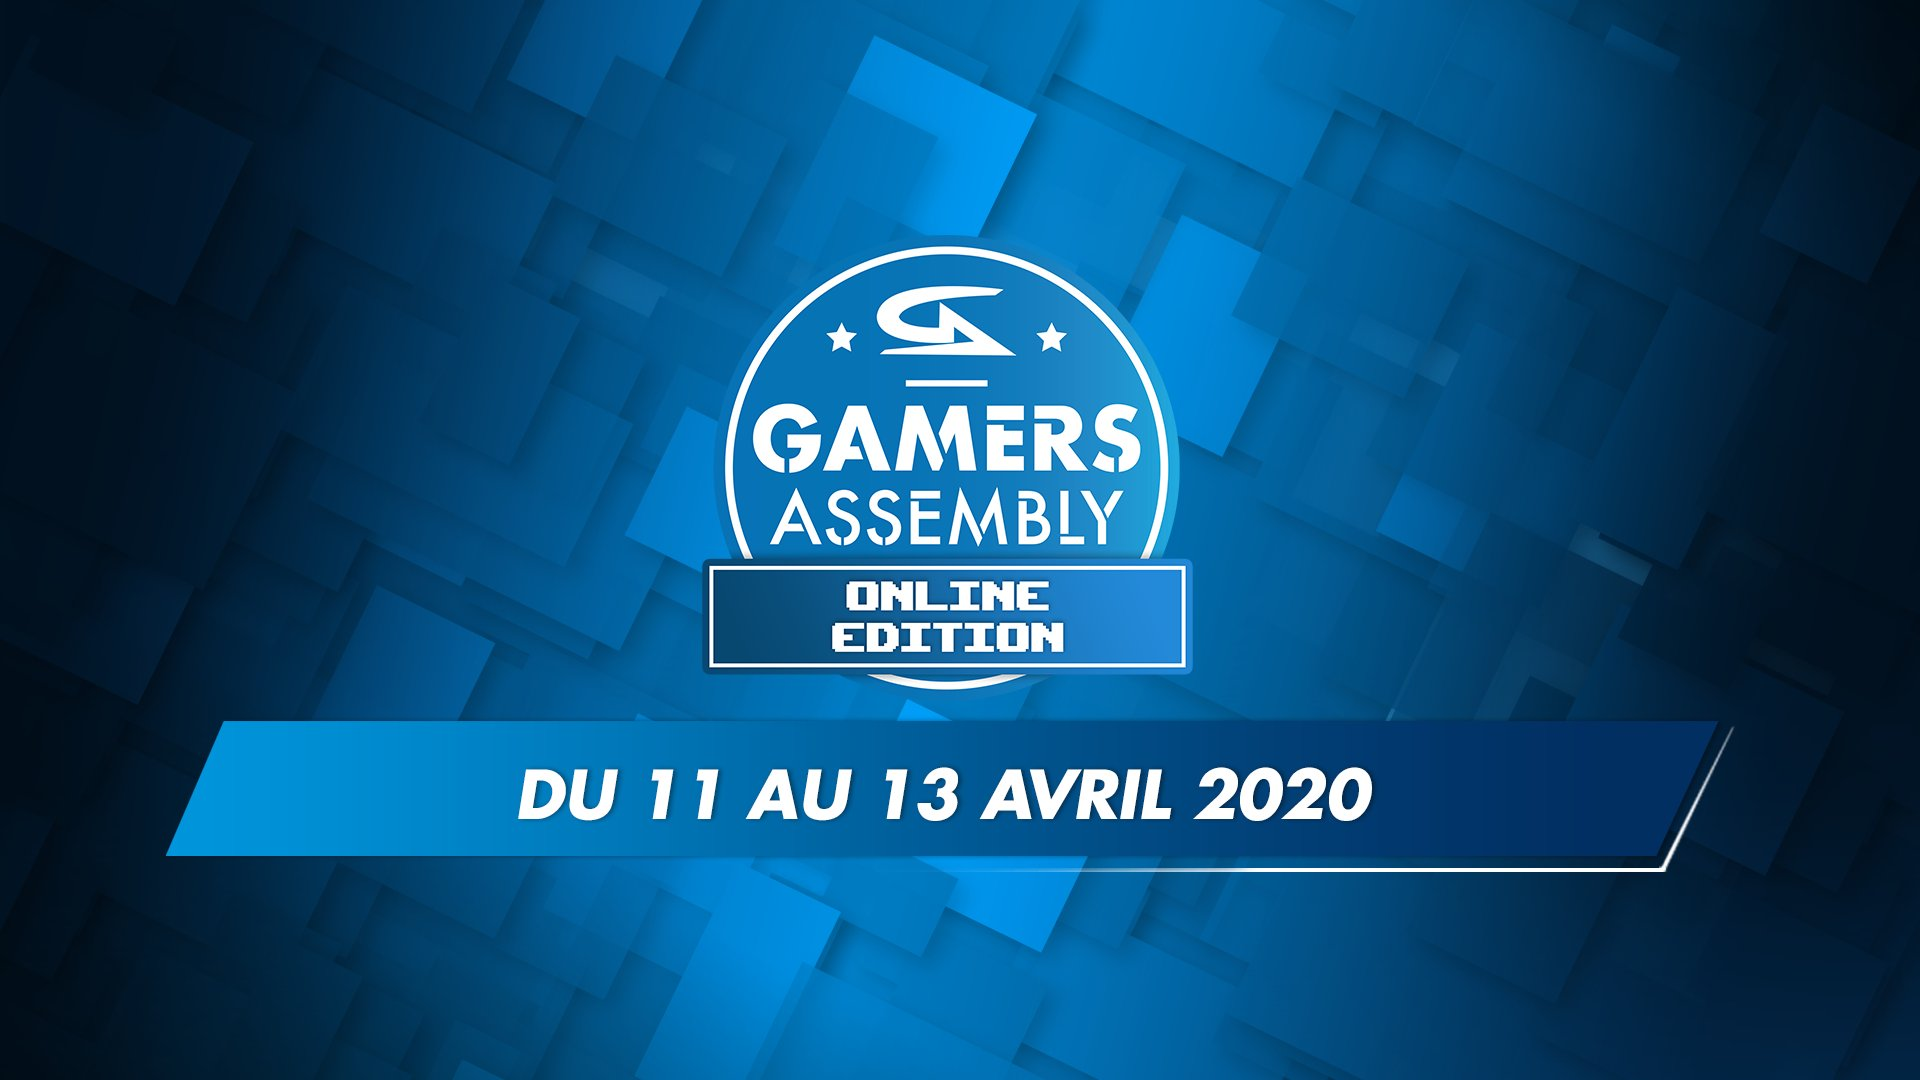 gamers assembly online edition 2020